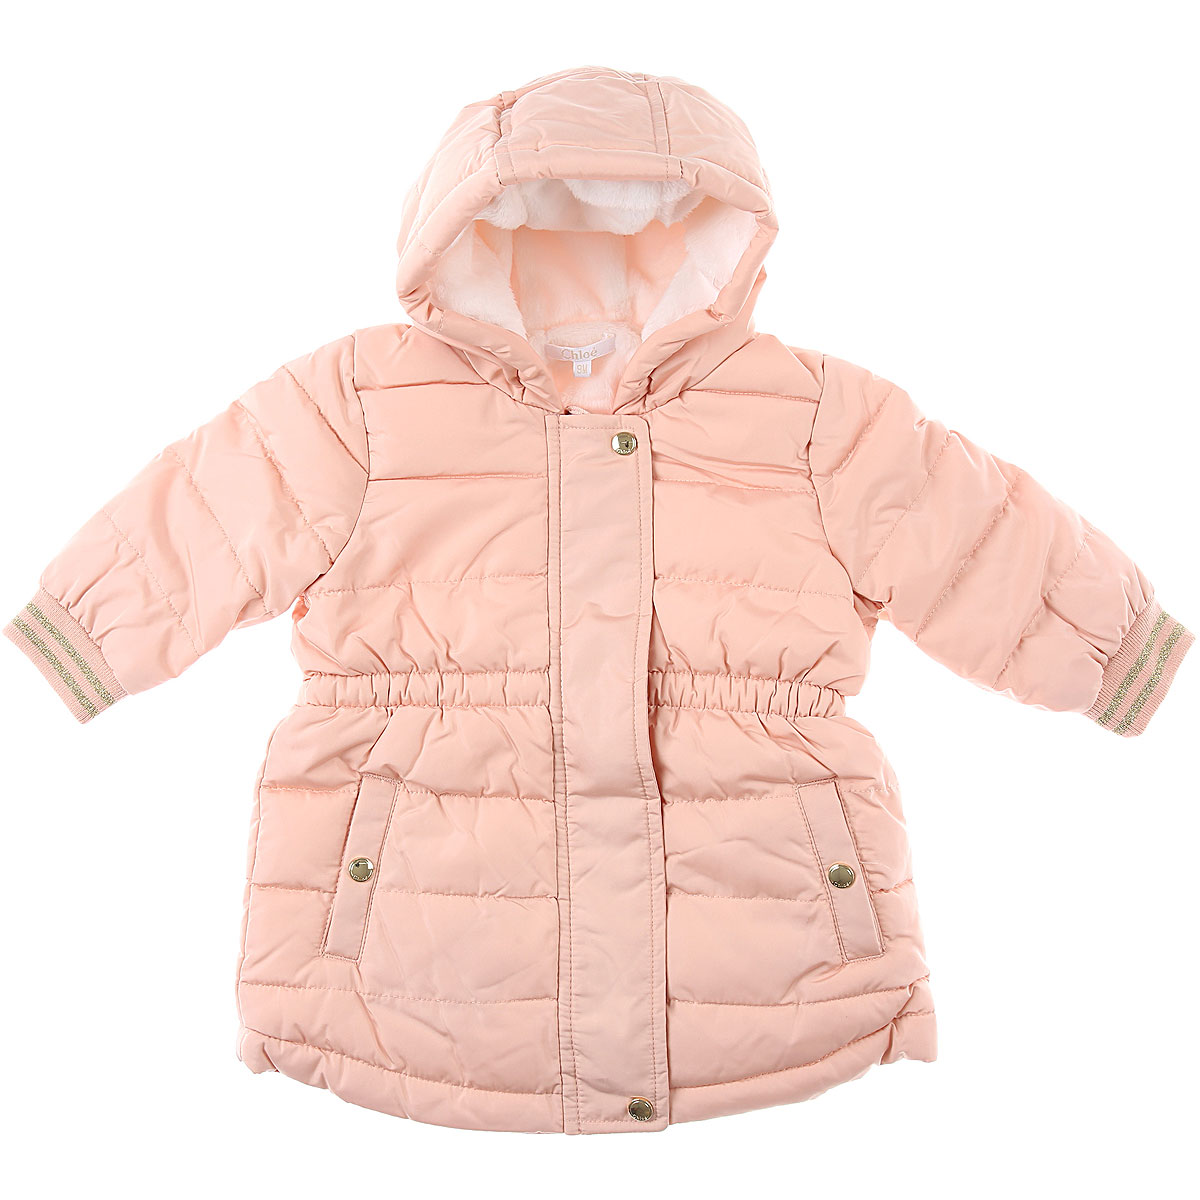 Chloe Baby Down Jacket for Girls On Sale, Pink Apricot, polyester, 2019, 12M 18M 2Y 9M